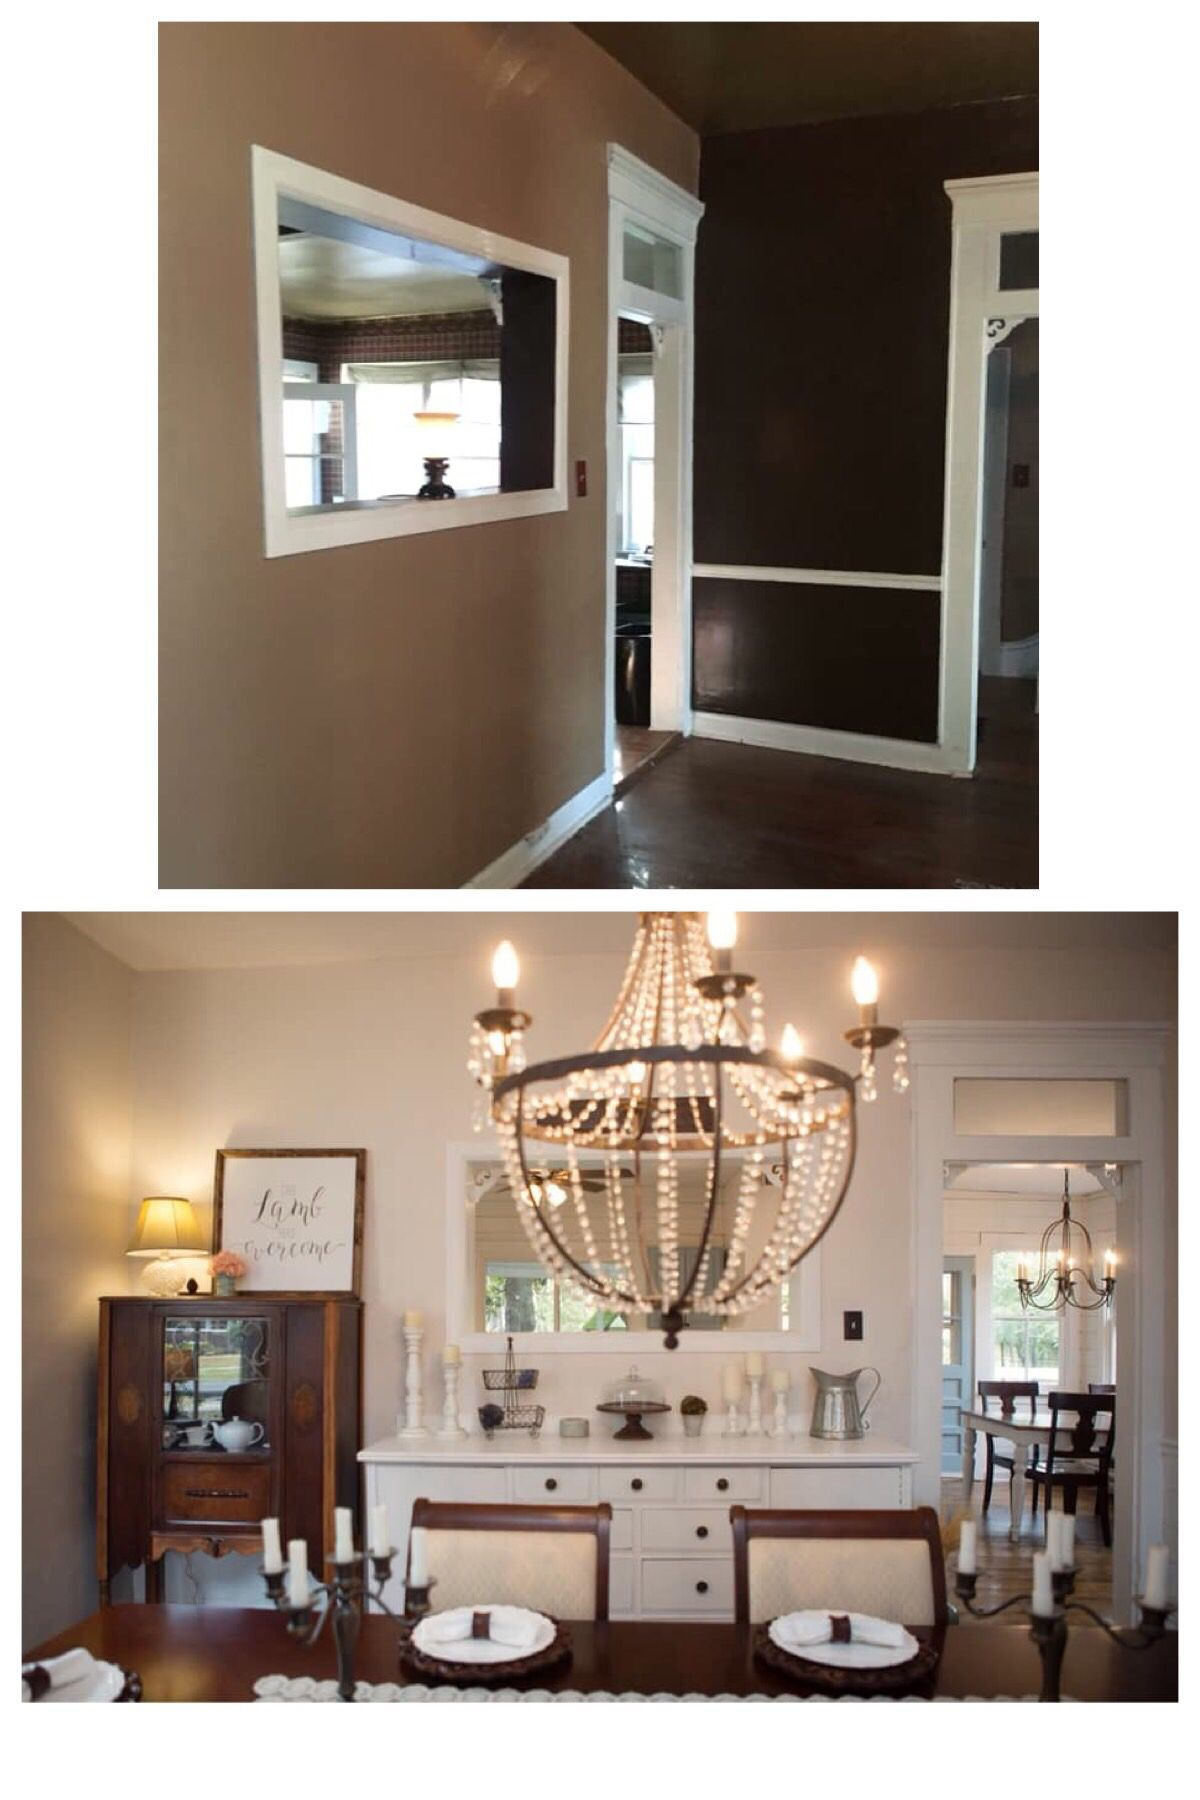 Added A Large Built In Sideboard And Pottery Barn Chandelier Refinished Floors Primer Paint On Ceilings Walls Trim